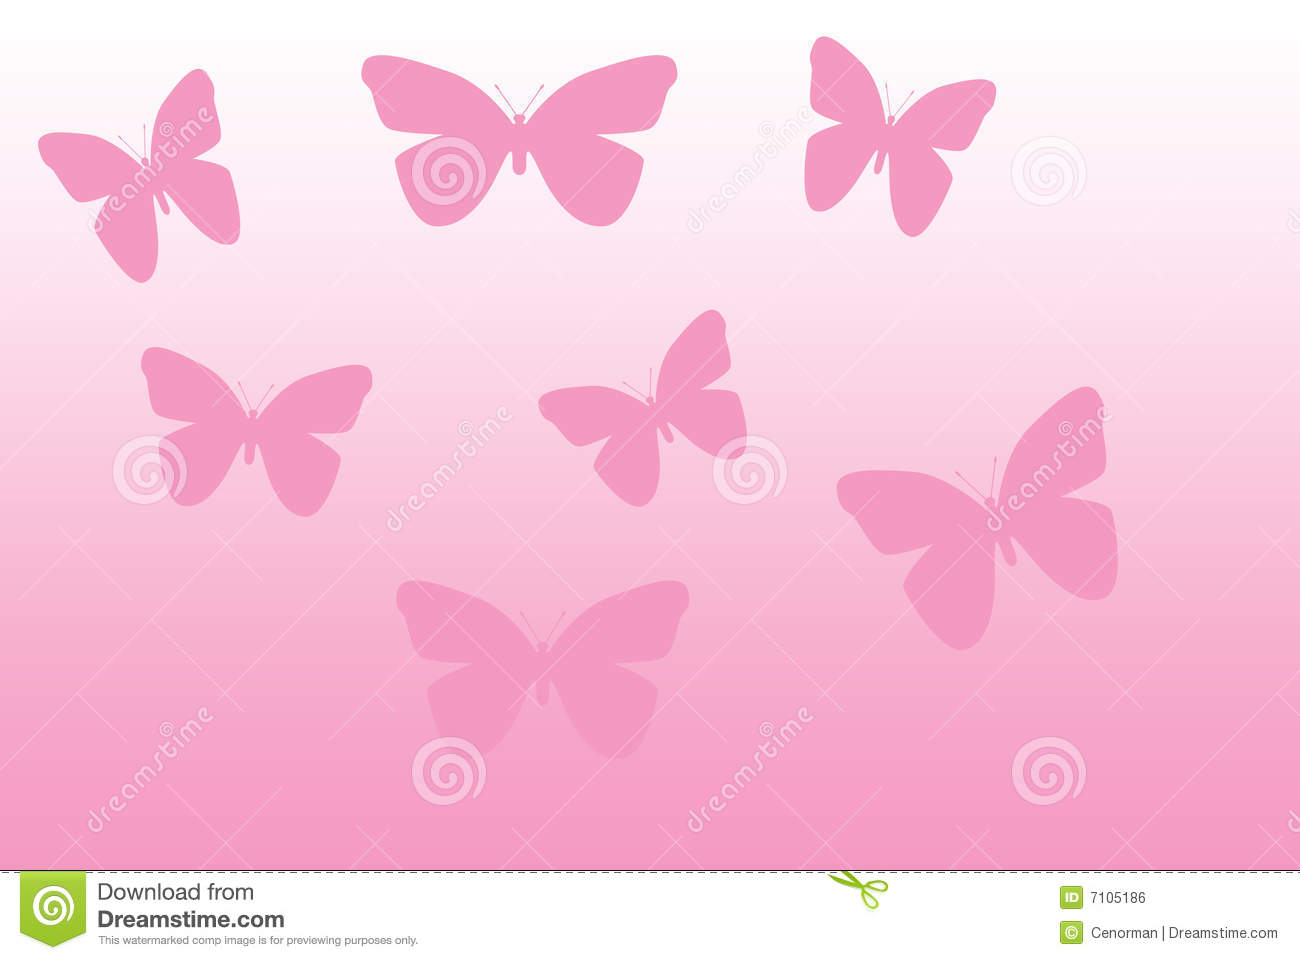 Mariposas Rosadas - More Information